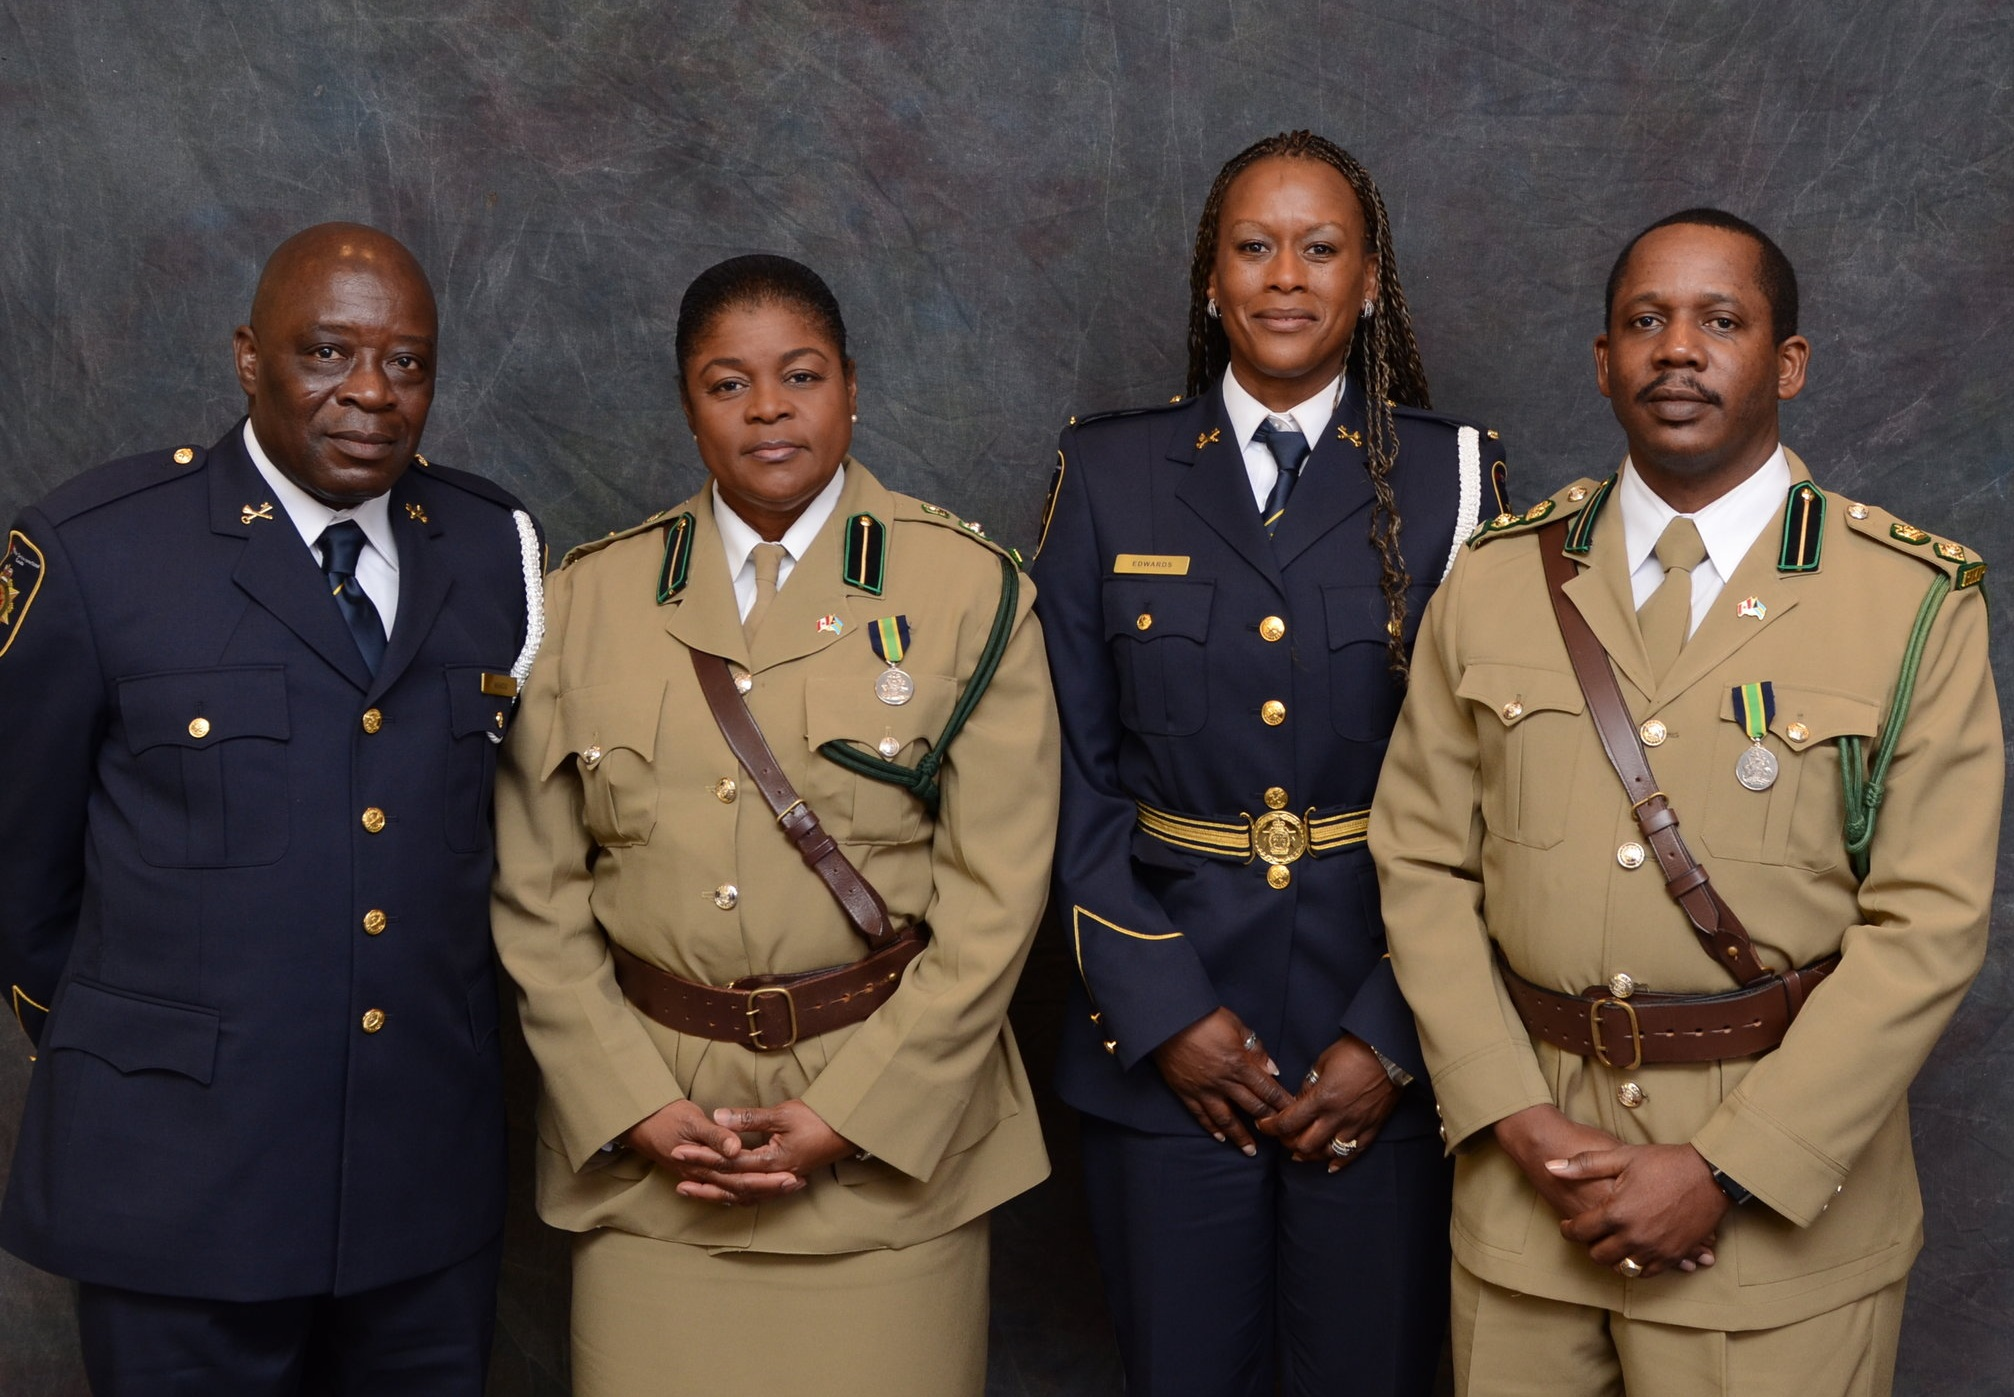 Jacqueline Edwards (second from right) with CSC recruitment officer Gideon Nekou (l) and visiting Bermuda correctional officers Bernadette Murray & Doan Cleare